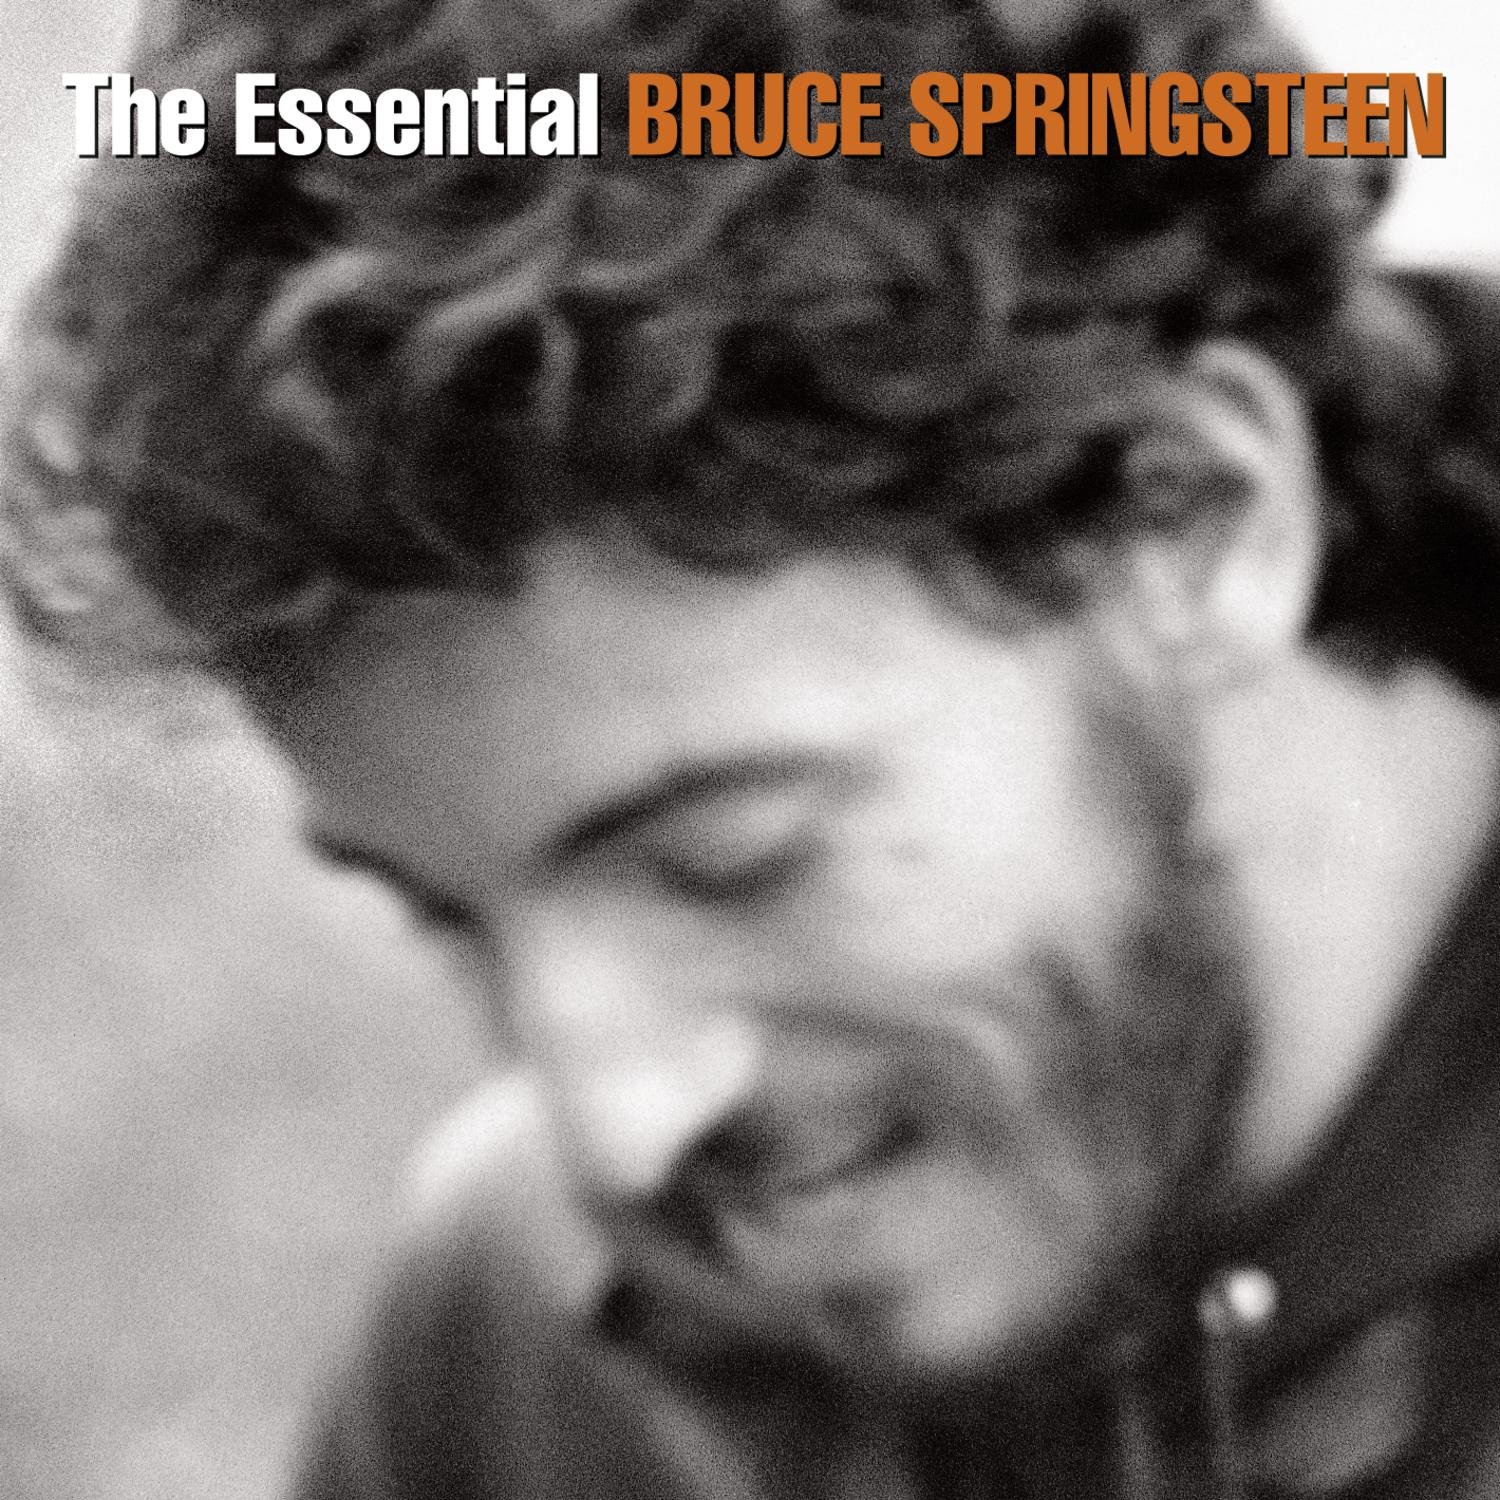 The Essential Bruce Springsteen by Columbia